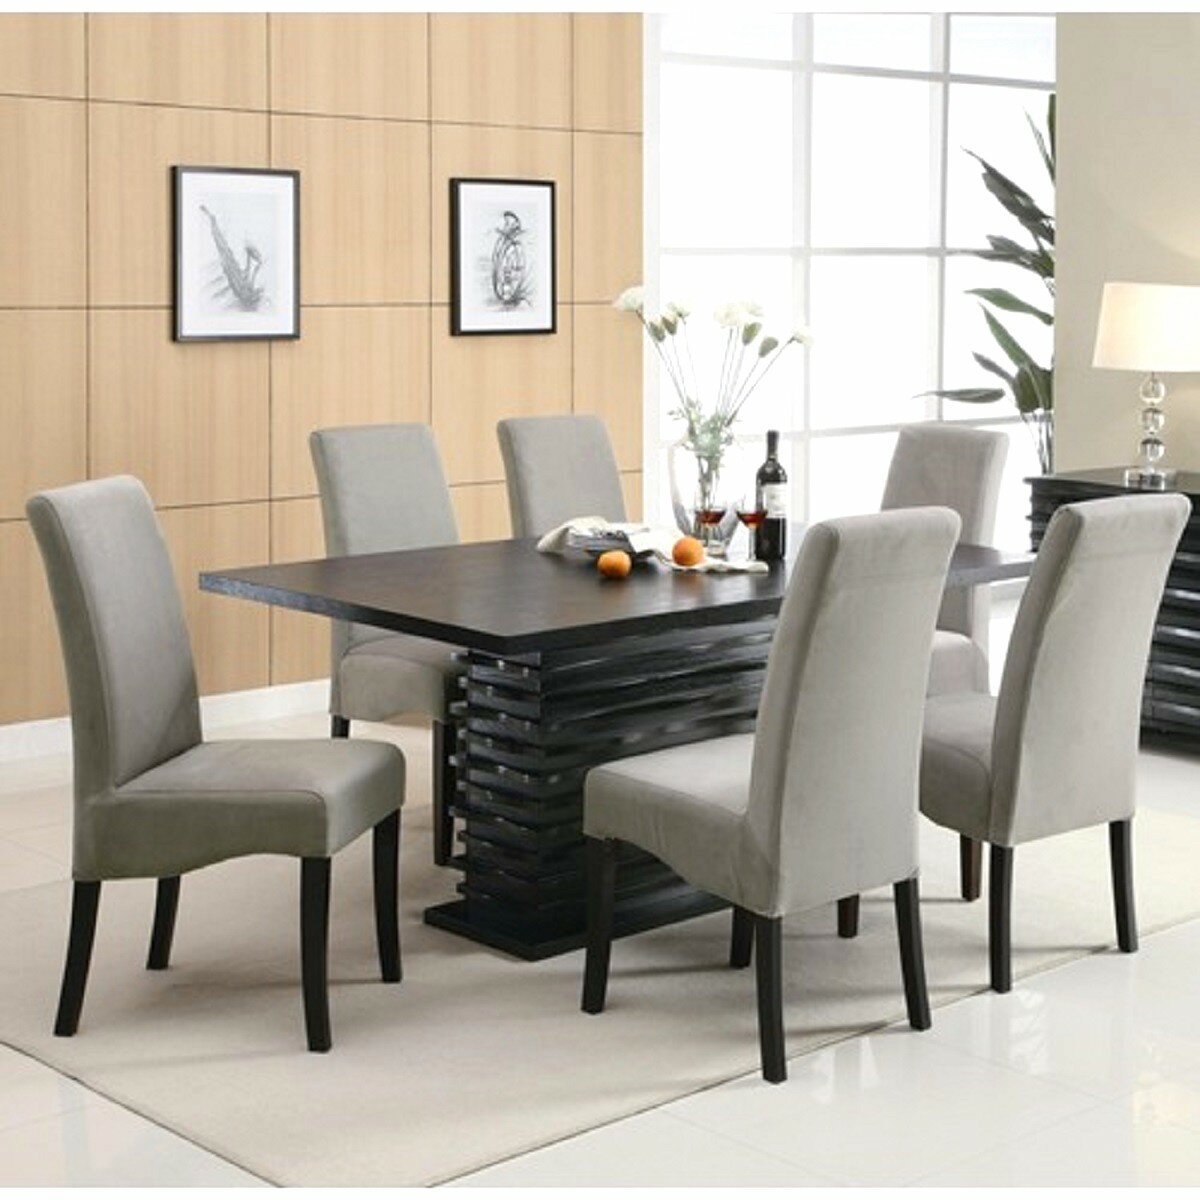 Furniture Today  Furniture industry news for retailers